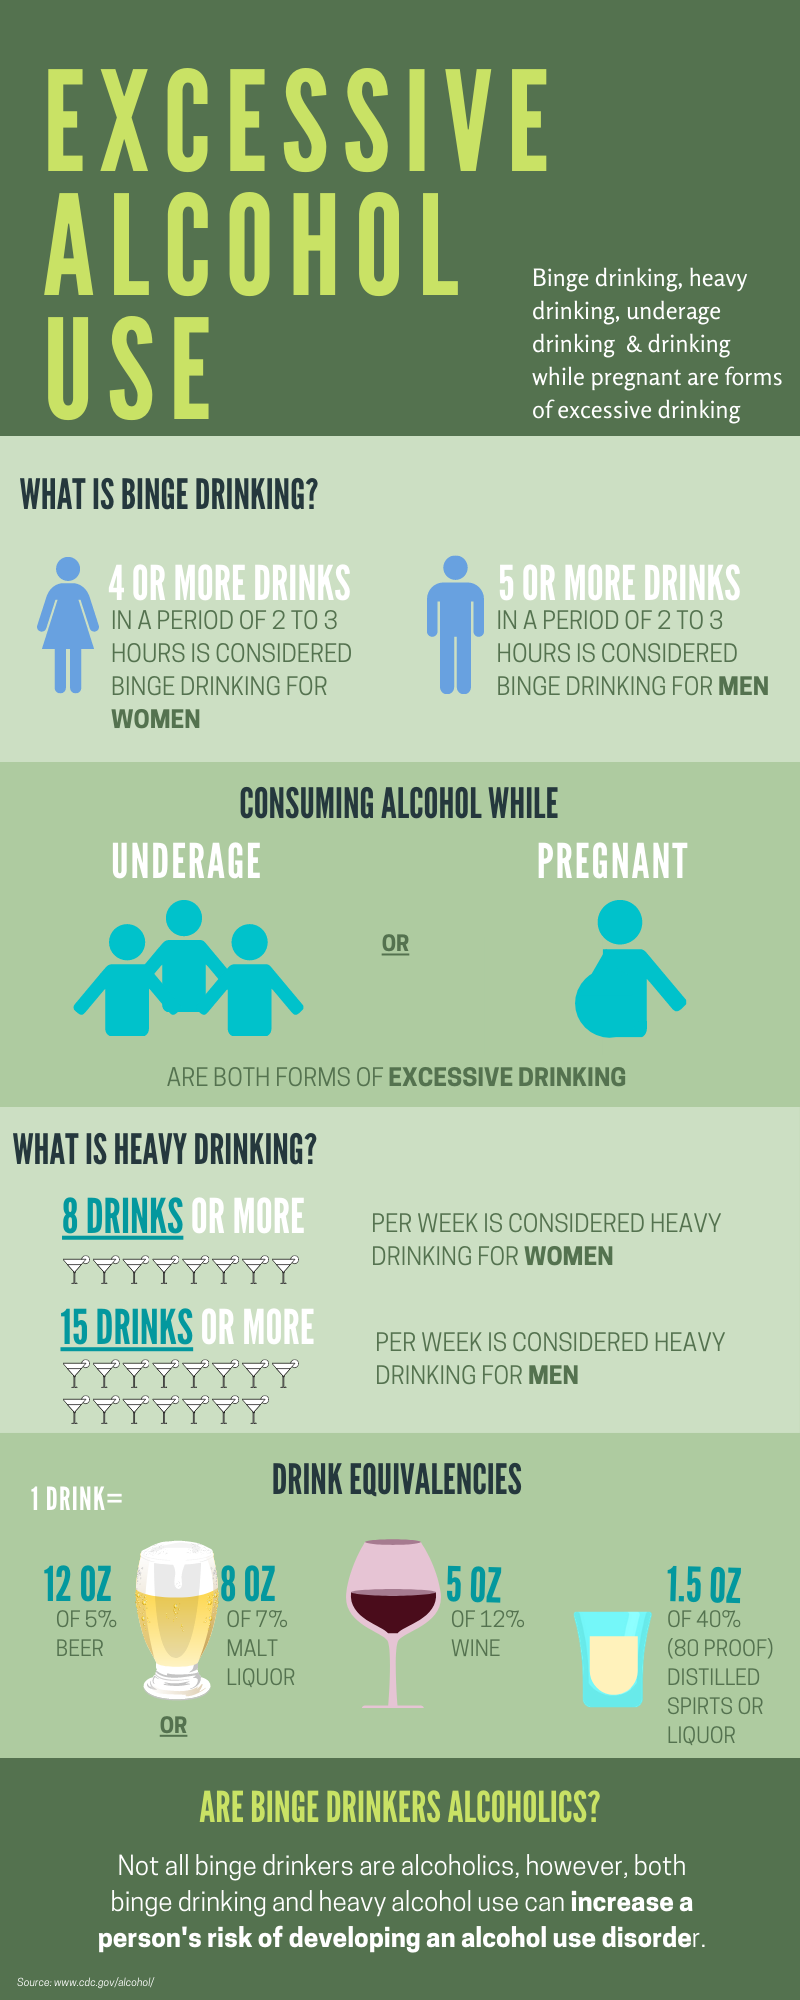 The long-term effects of alcohol ad excessive drinking: Binge drinking and heavy drinking